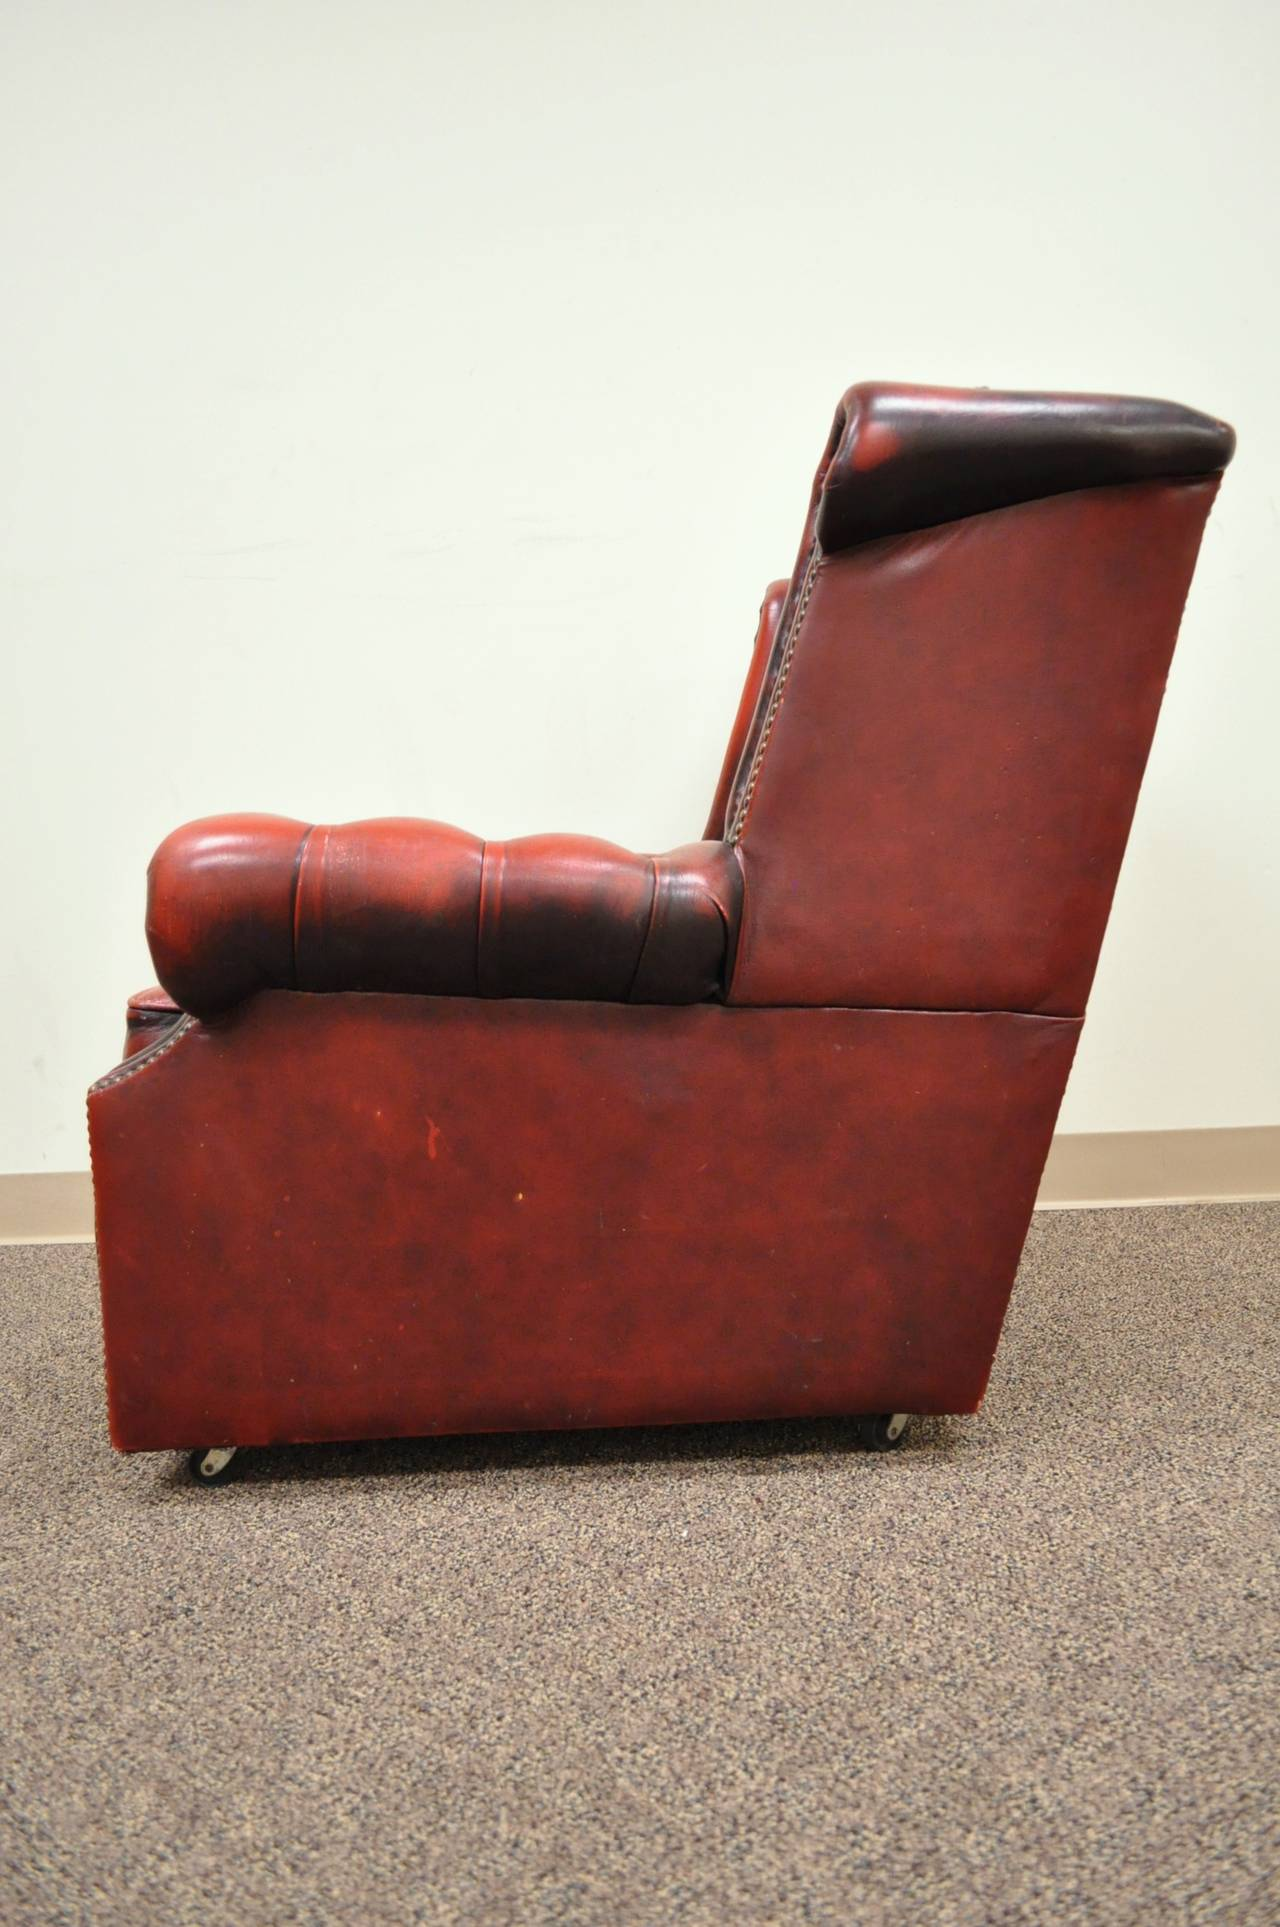 Striking Rolled Arm Tufted Chesterfield Style Lounge Chair in Red Leather For Sale 2